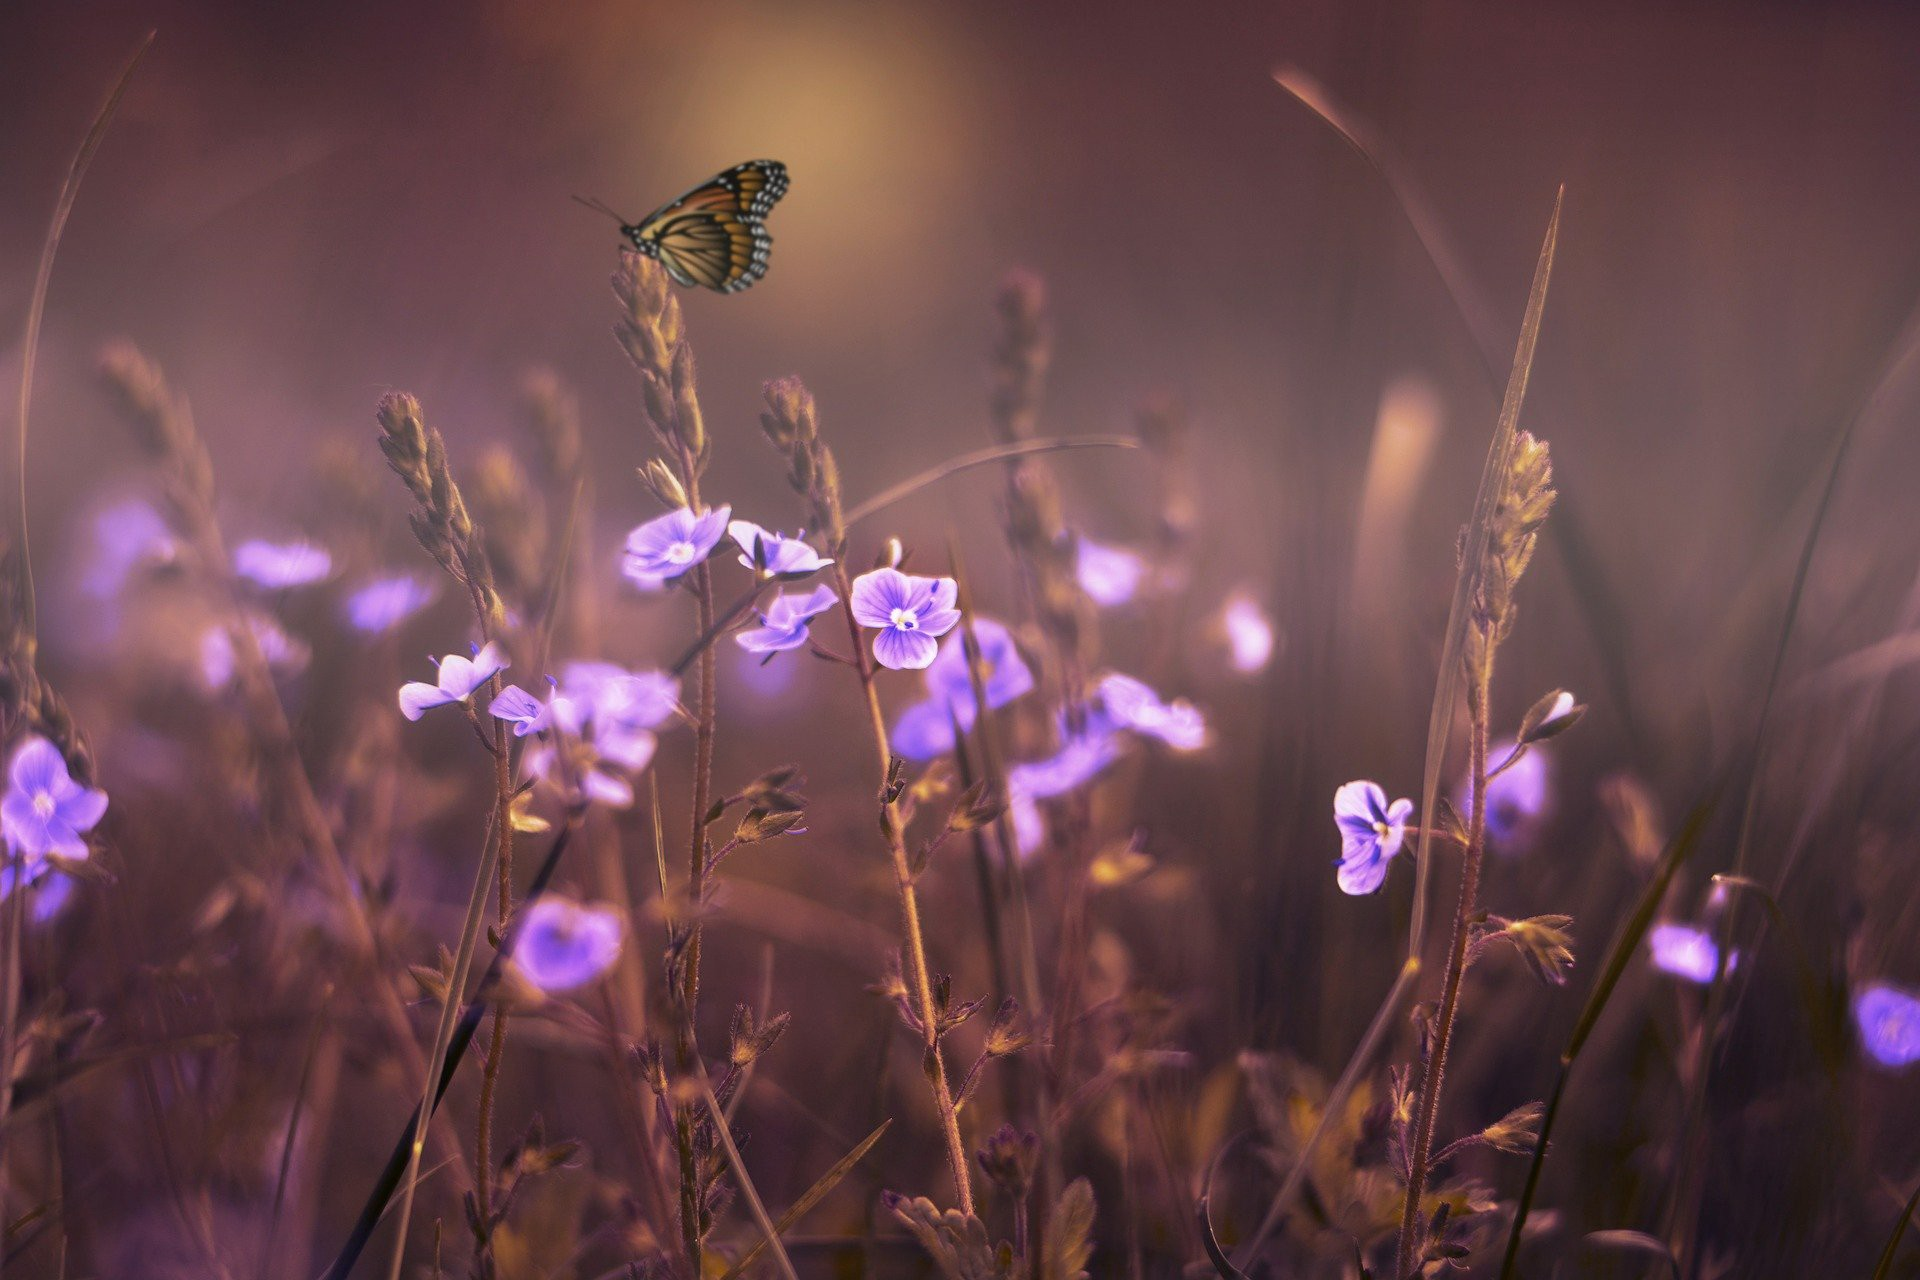 Butterfly and lilac flowers